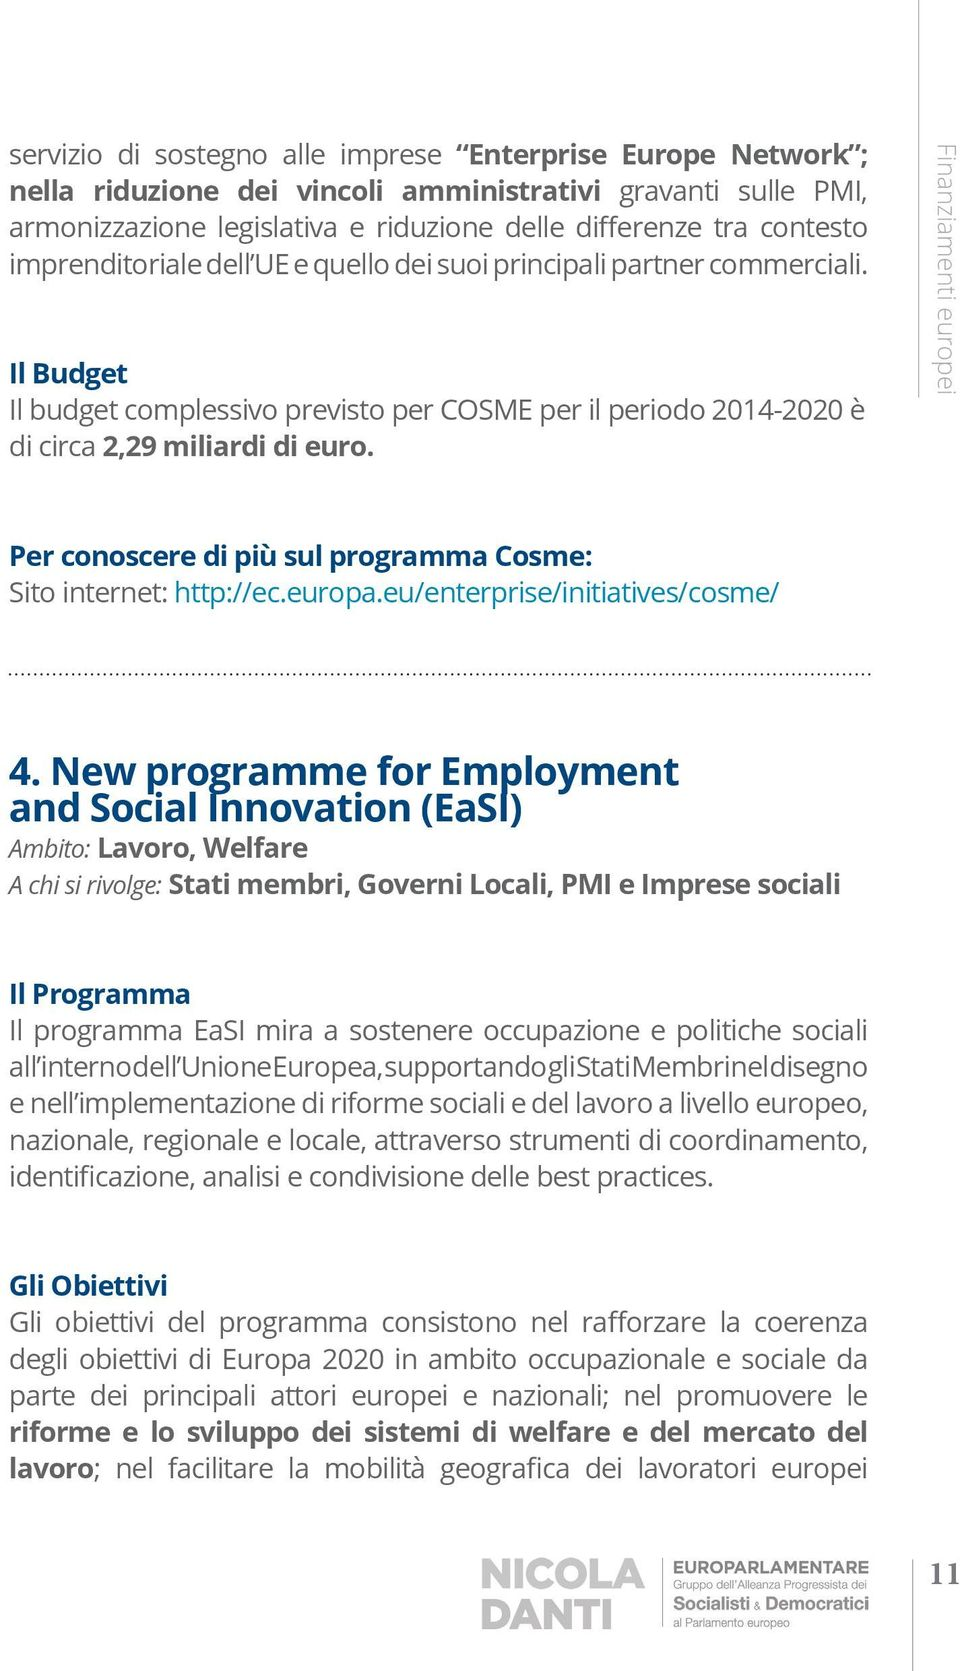 New programme for Employment and Social Innovation (EaSI) Ambito: Lavoro, Welfare A chi si rivolge: Stati membri, Governi